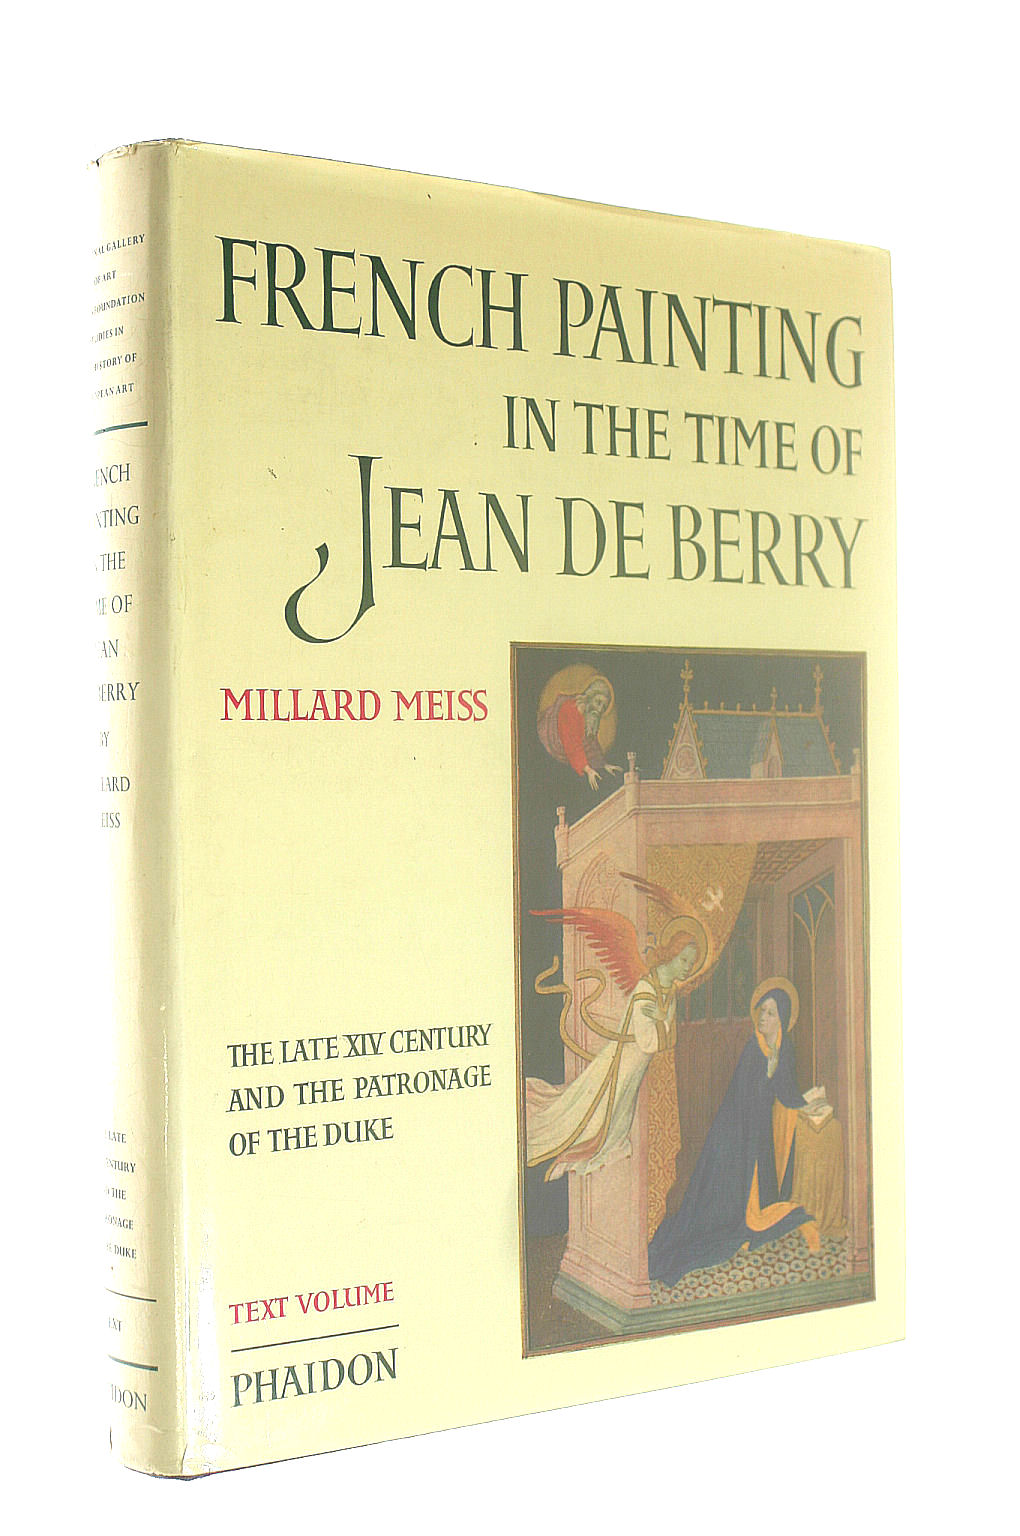 Image for French Painting in theTime of Jean de Berry: The Late XIV Century and the Patronage of the Duke (National Gallery of Art : Kress Foundation Studies in the History of European Art, Text Volume)